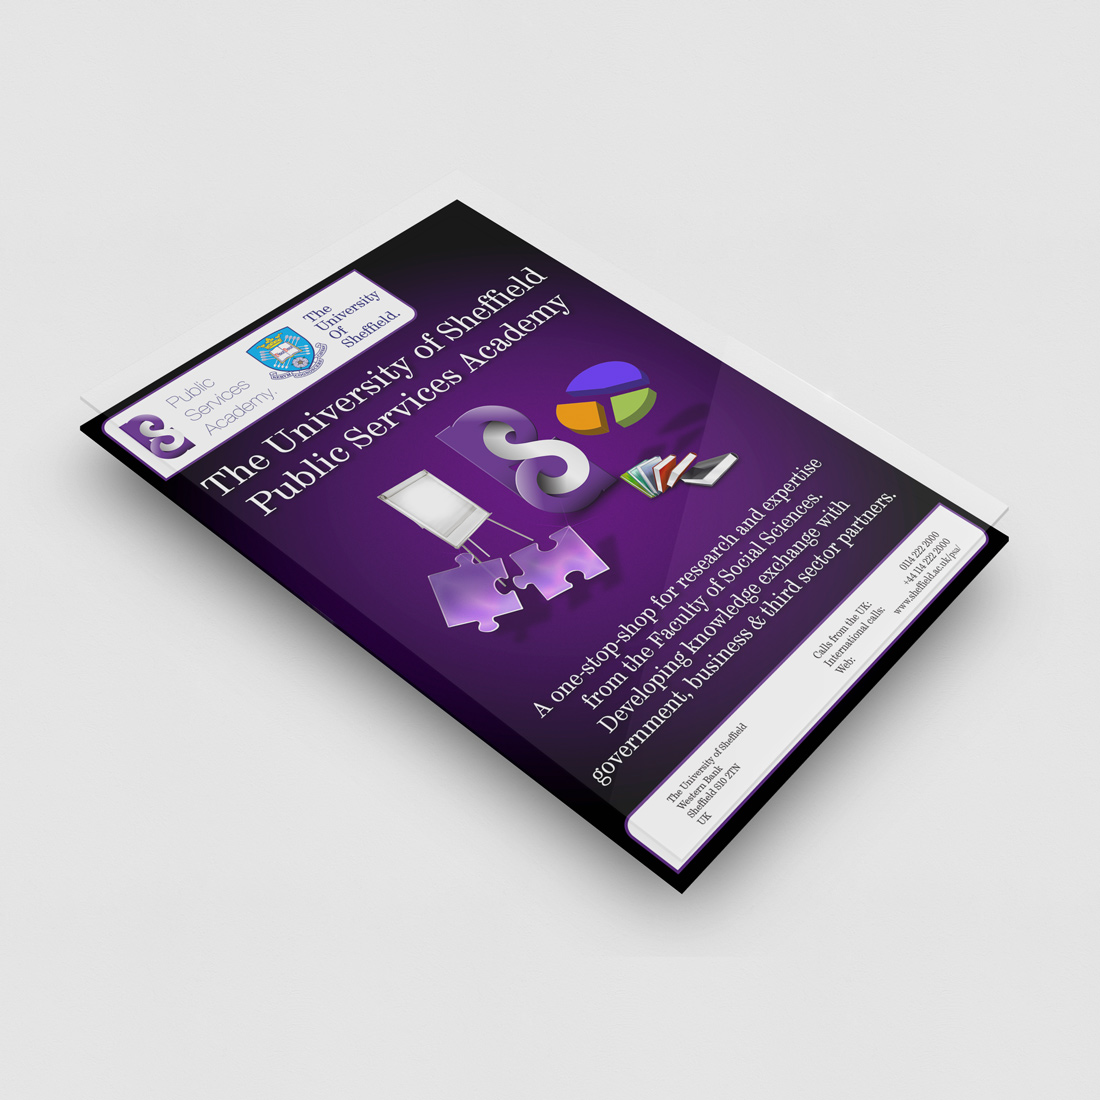 Sheffield University Branding Elbowroom Graphics